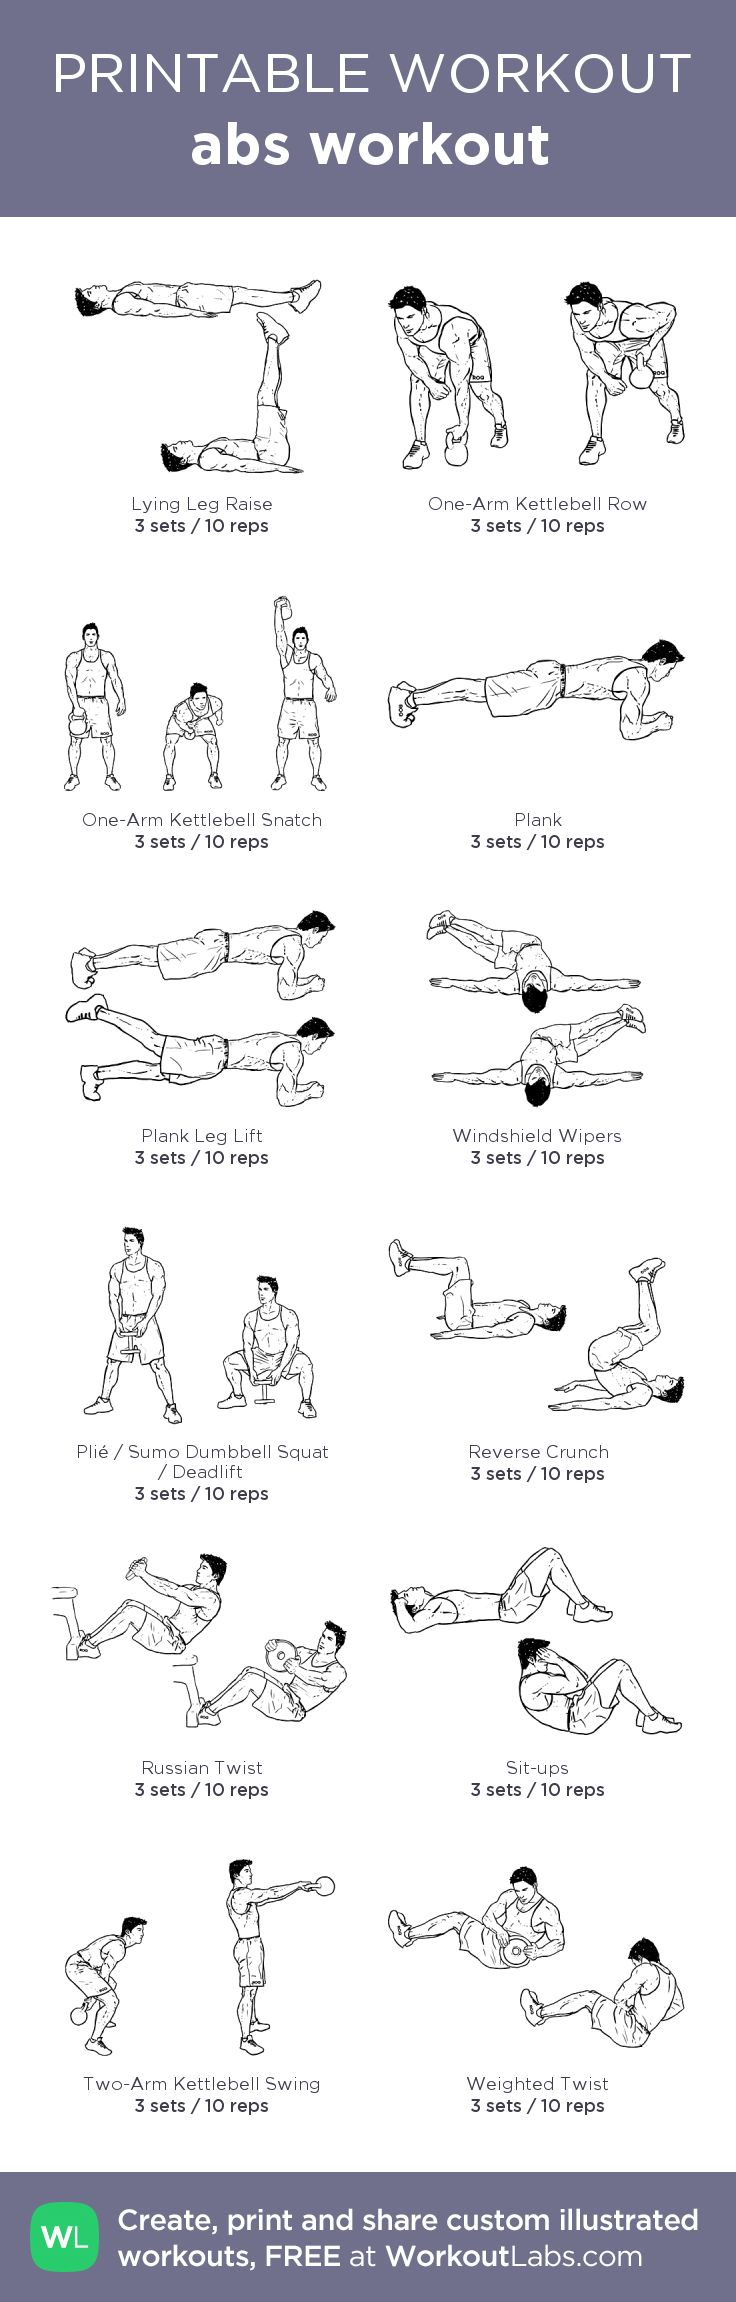 abs workout:my custom printable workout by @WorkoutLabs #workoutlabs #customworkout